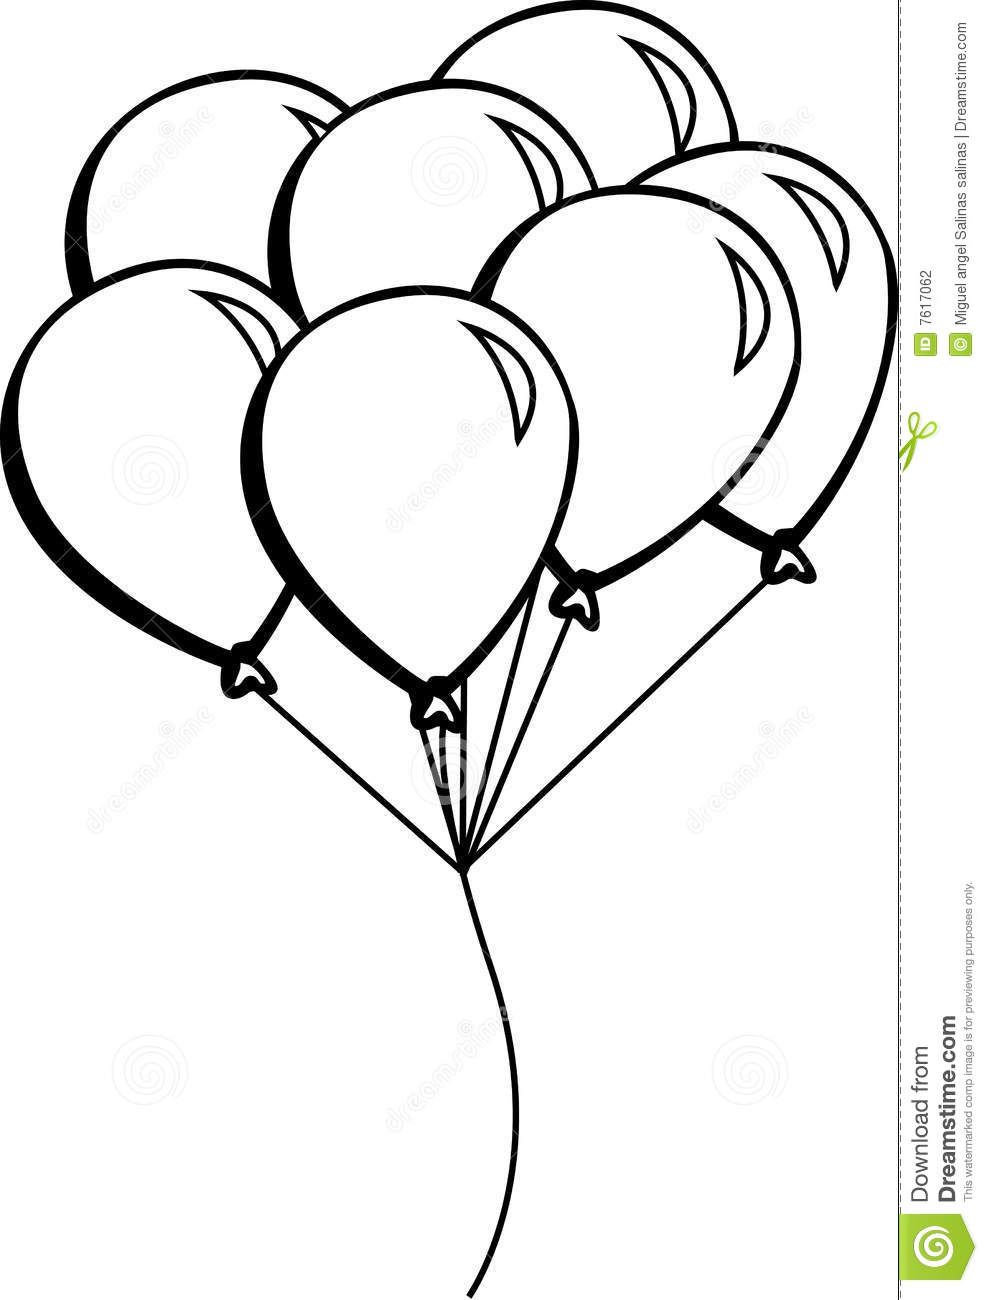 Image result for how to draw a bouquet of balloons  School